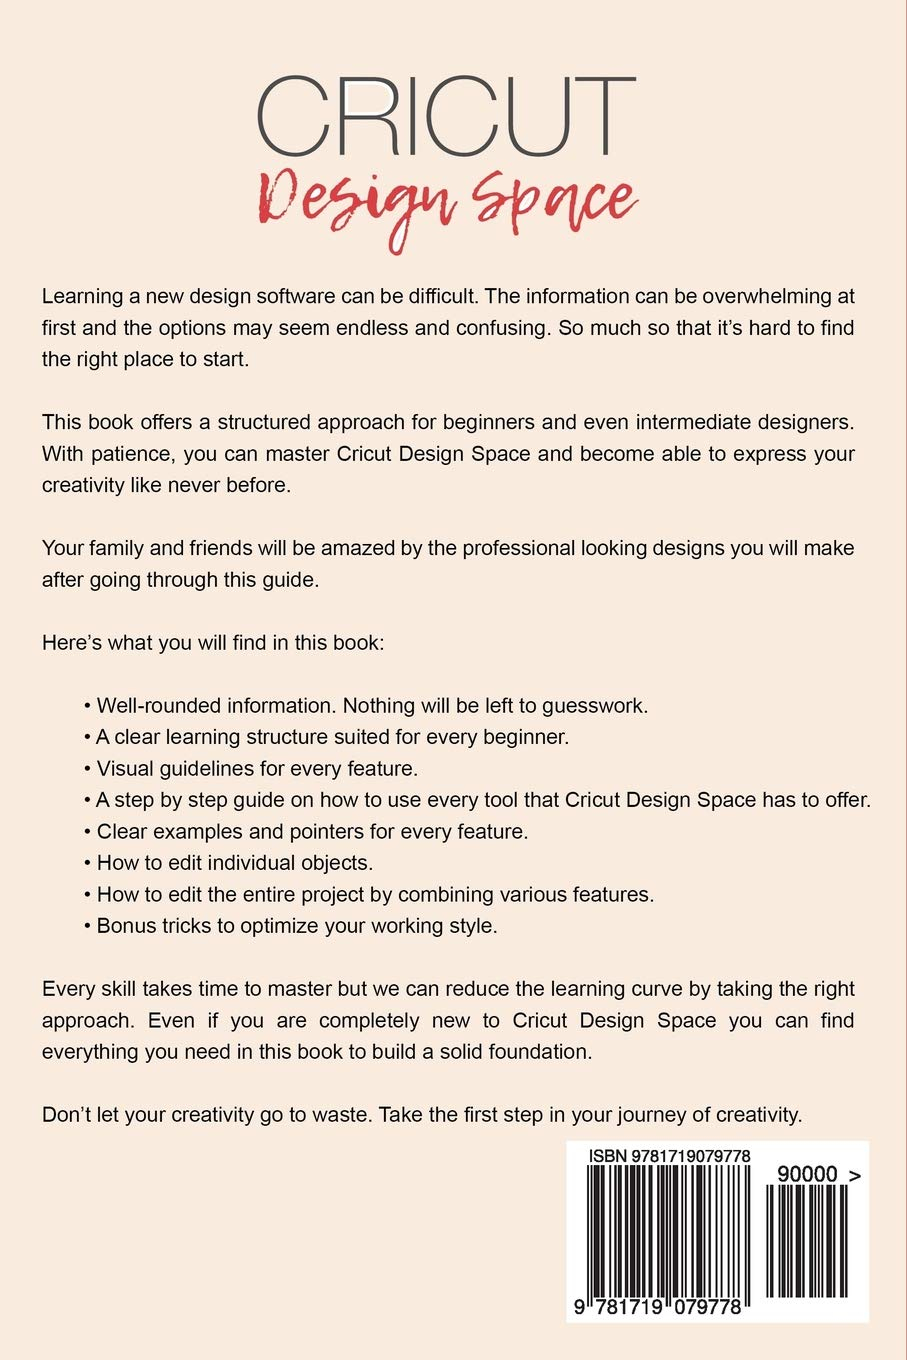 Cricut Design Space: A beginner's guide on how to design